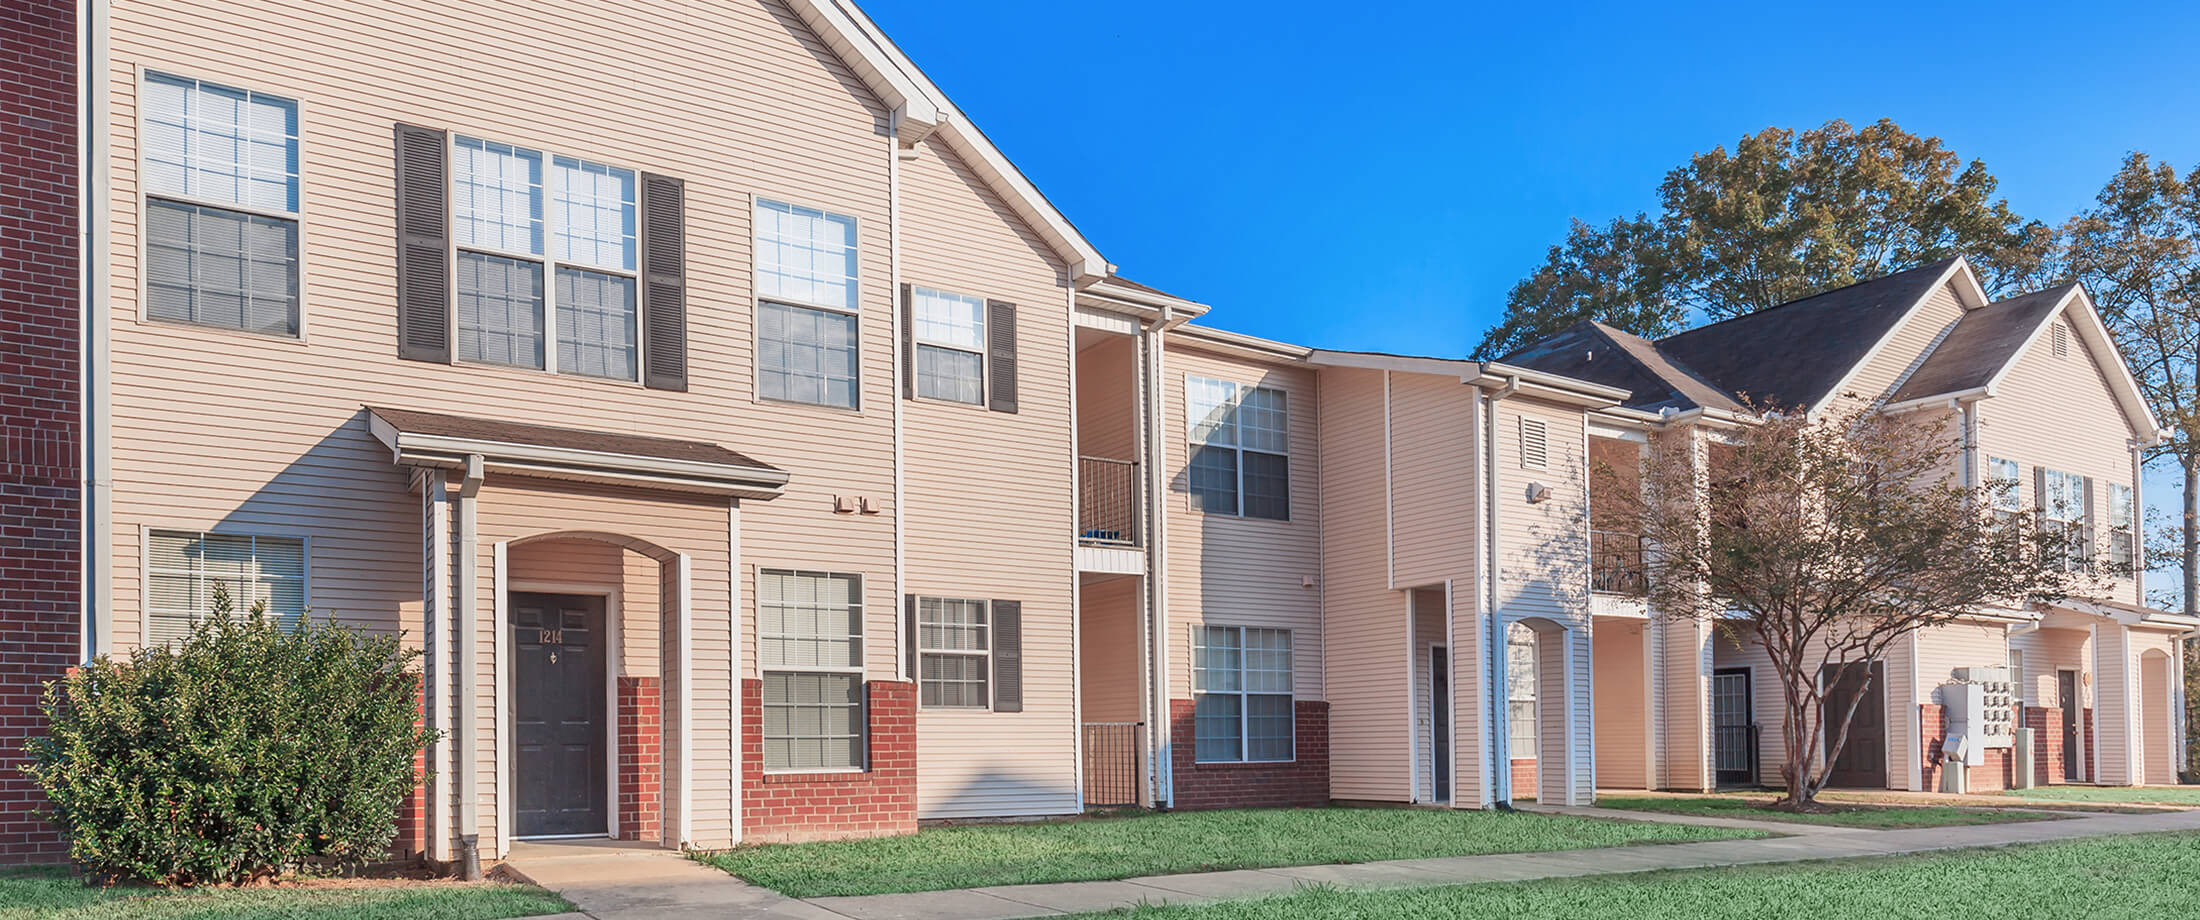 Chandler Park Apartments Apartments In Starkville Ms